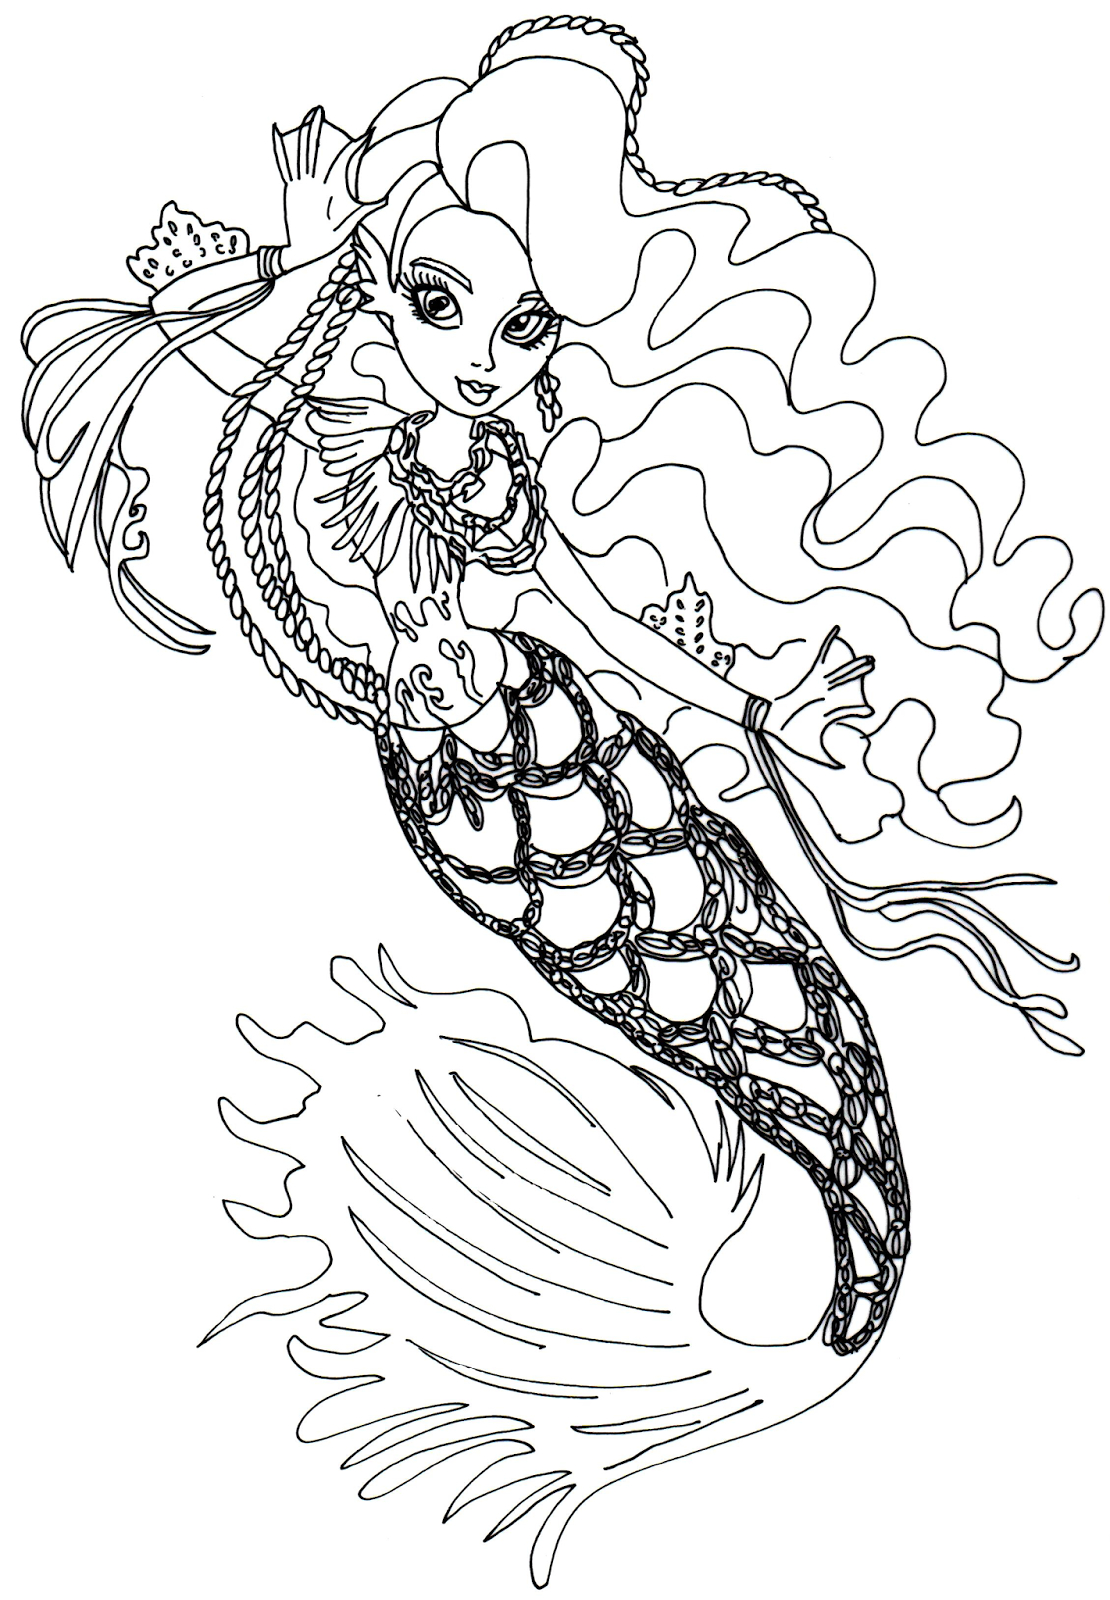 Monster High Coloring Pages Monster High Coloring Page All Collection Of Exquisite Monster High Printables Coloring Pages Free Gallery